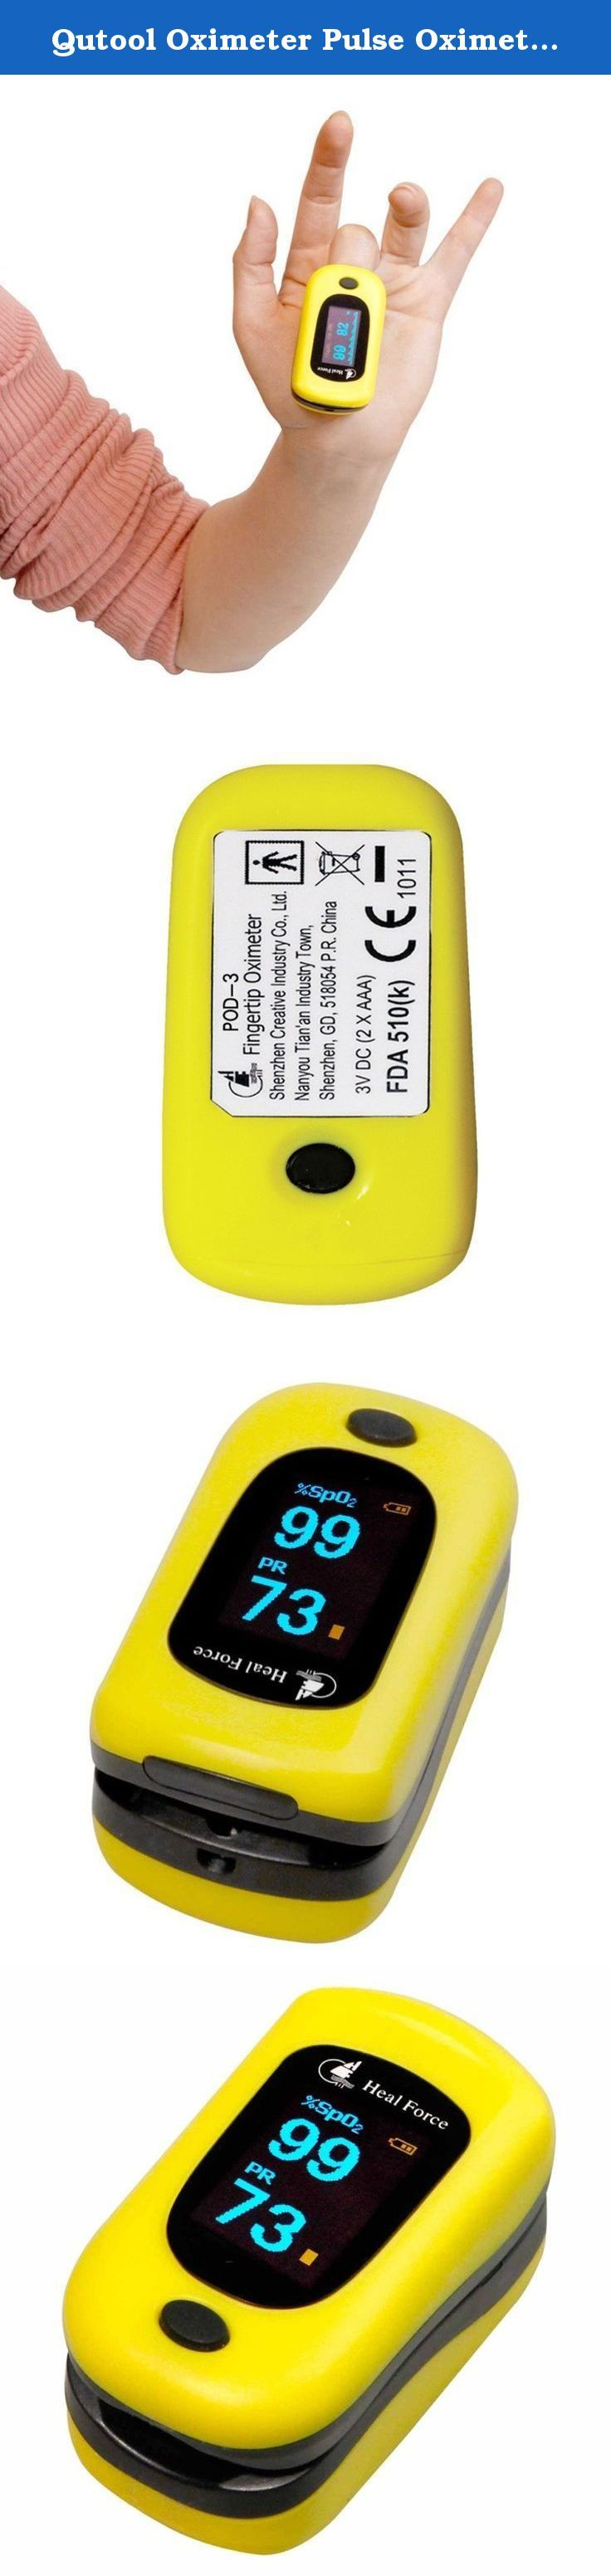 "Qutool Oximeter Pulse Oximeter Blood Oxygen Saturation Monitor. Technical Specifications: Display Screen: 0.95"" color OLED Multi-direction Display: 4 directions Measuring range(SPO2): 35-99% Pulse Rate (PR): 30bpm-240bpm Perfusion Index(PI): 0-20% Accuracy: ±2bpm or ±2%(which is greater) Operating Temperature: 5 degrees-40 degrees Operating humidity : 30%-80% Atmospheric pressure: 70kPa-106kPa Power Supply: 2*AAA alkaline battery Continuous working time if new battery: about 30hours…"